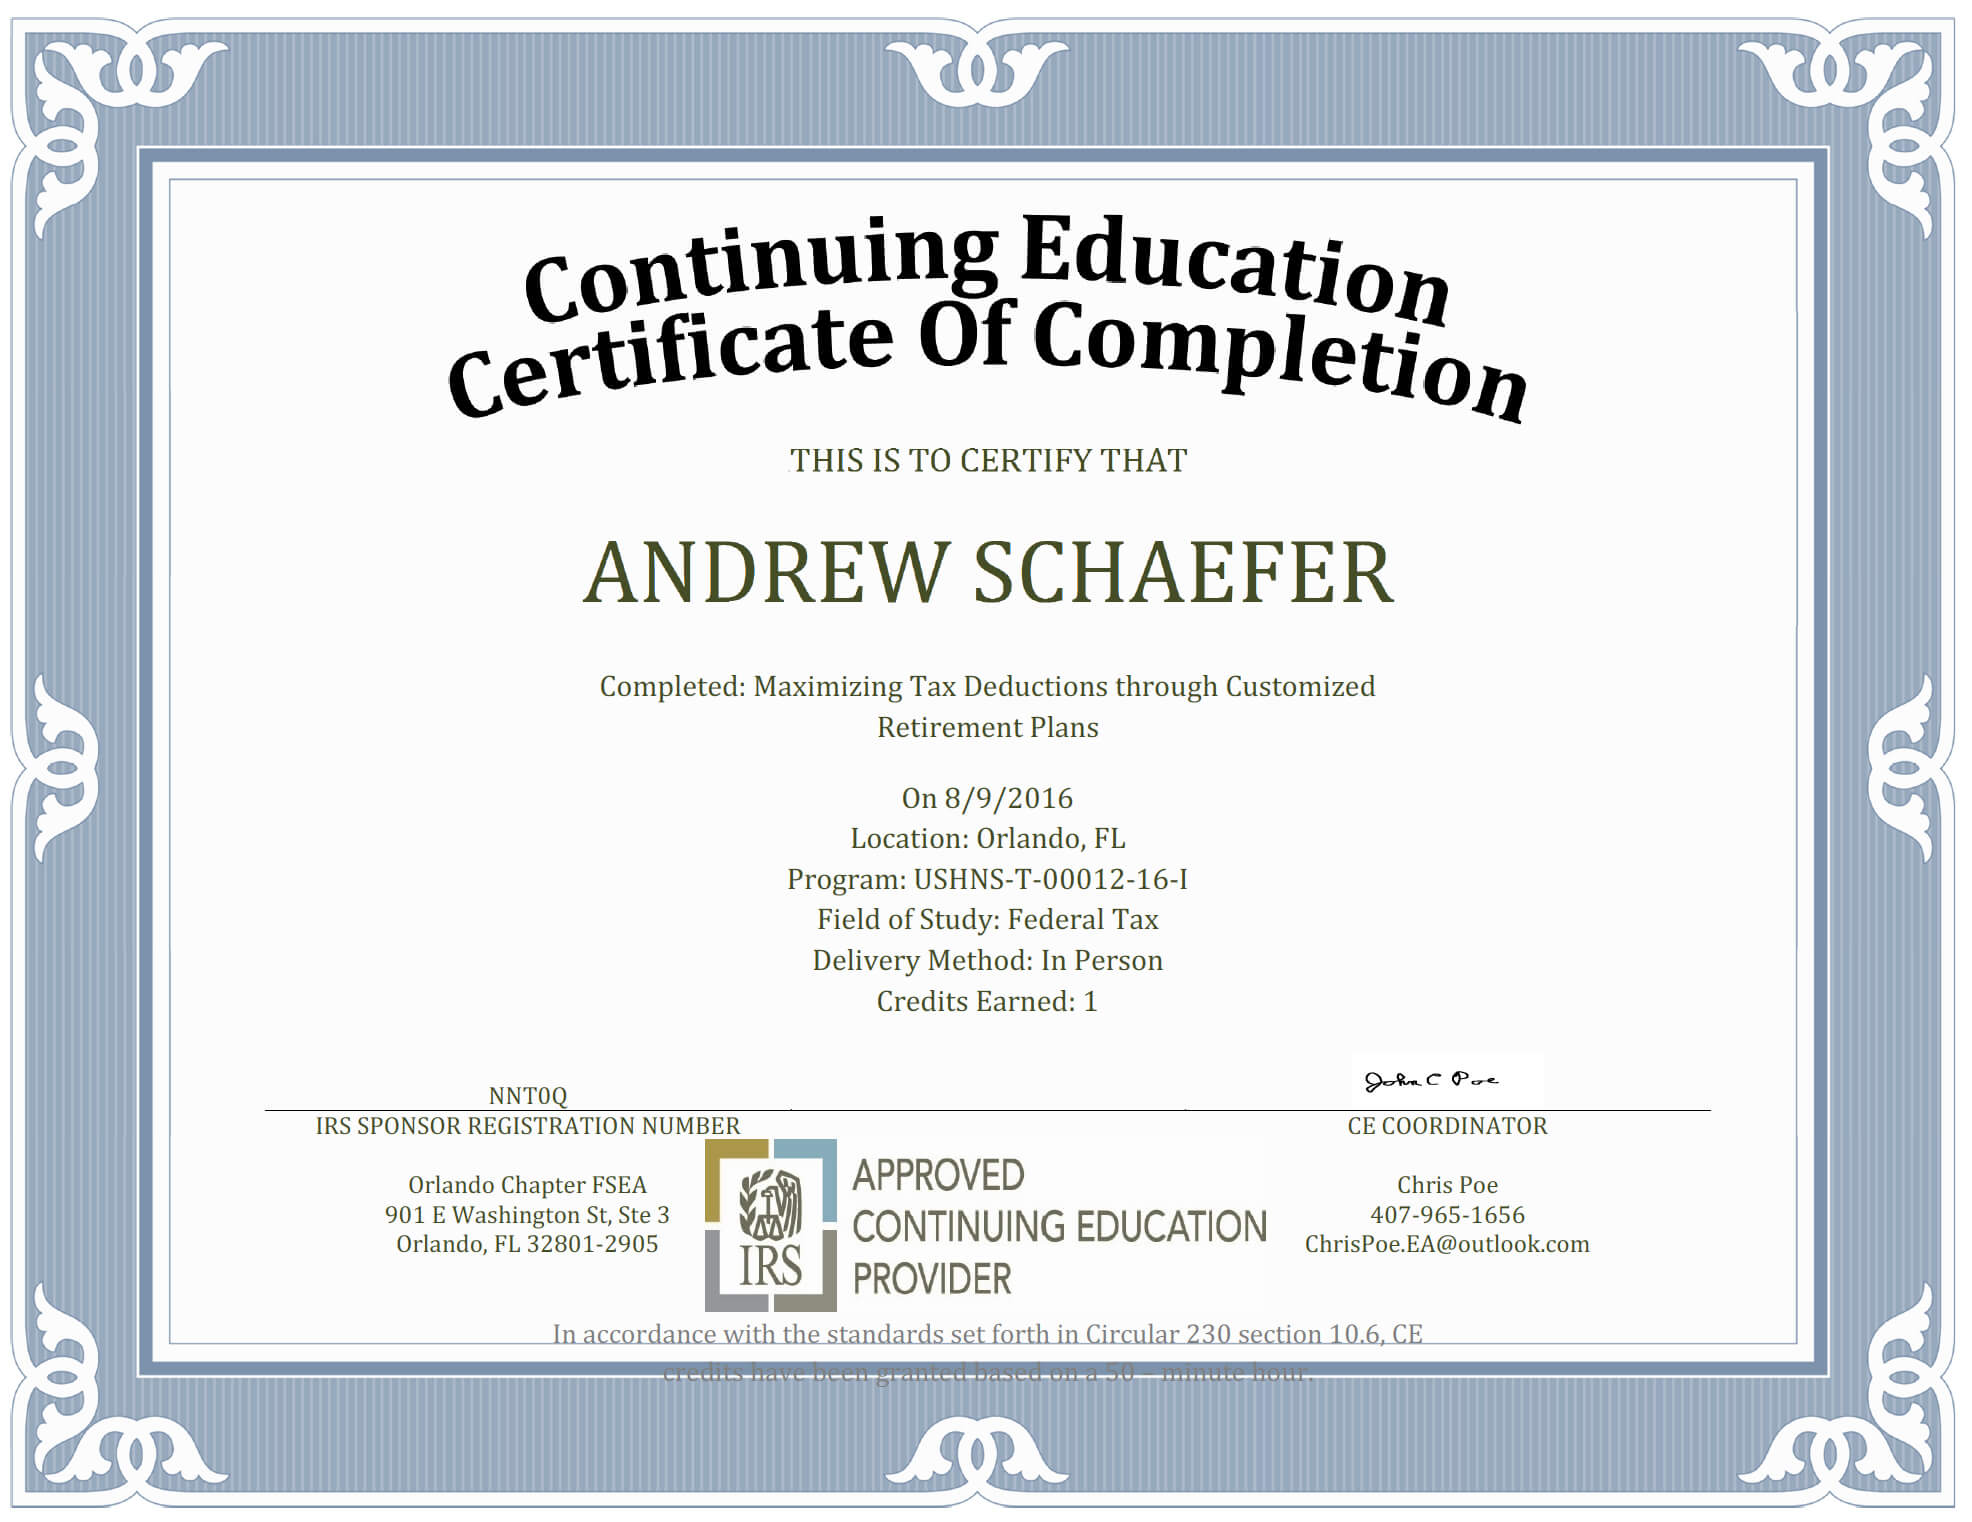 Ceu Certificate Of Completion Template Sample regarding Continuing Education Certificate Template